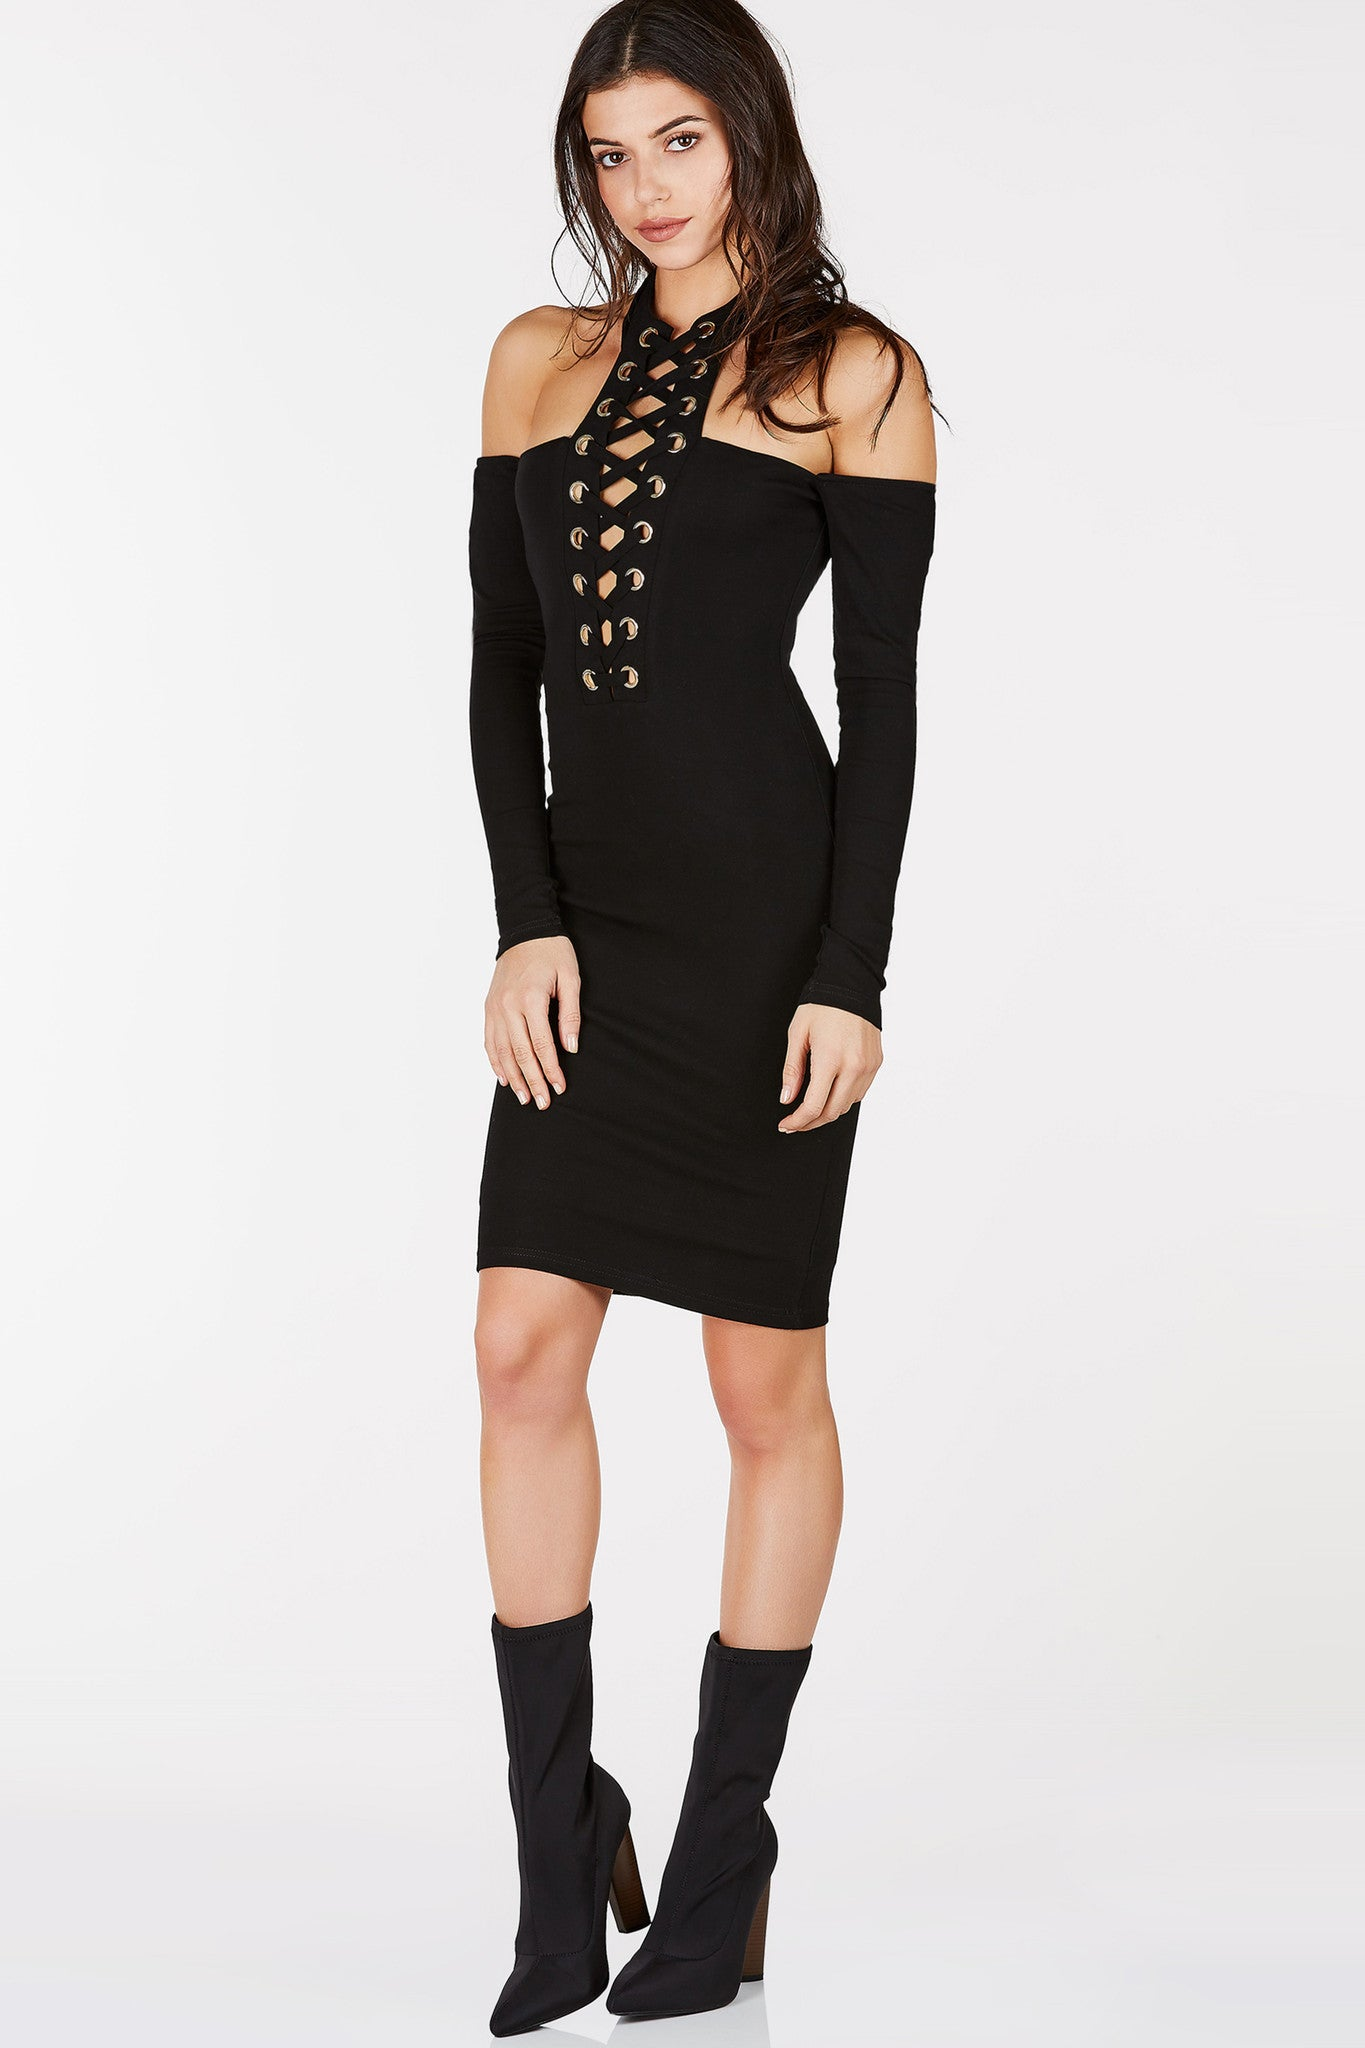 Black dress gold lace - Choker Neckline Long Sleeve Midi Dress Gold Eyelet Detailing With Lace Up Design In Front